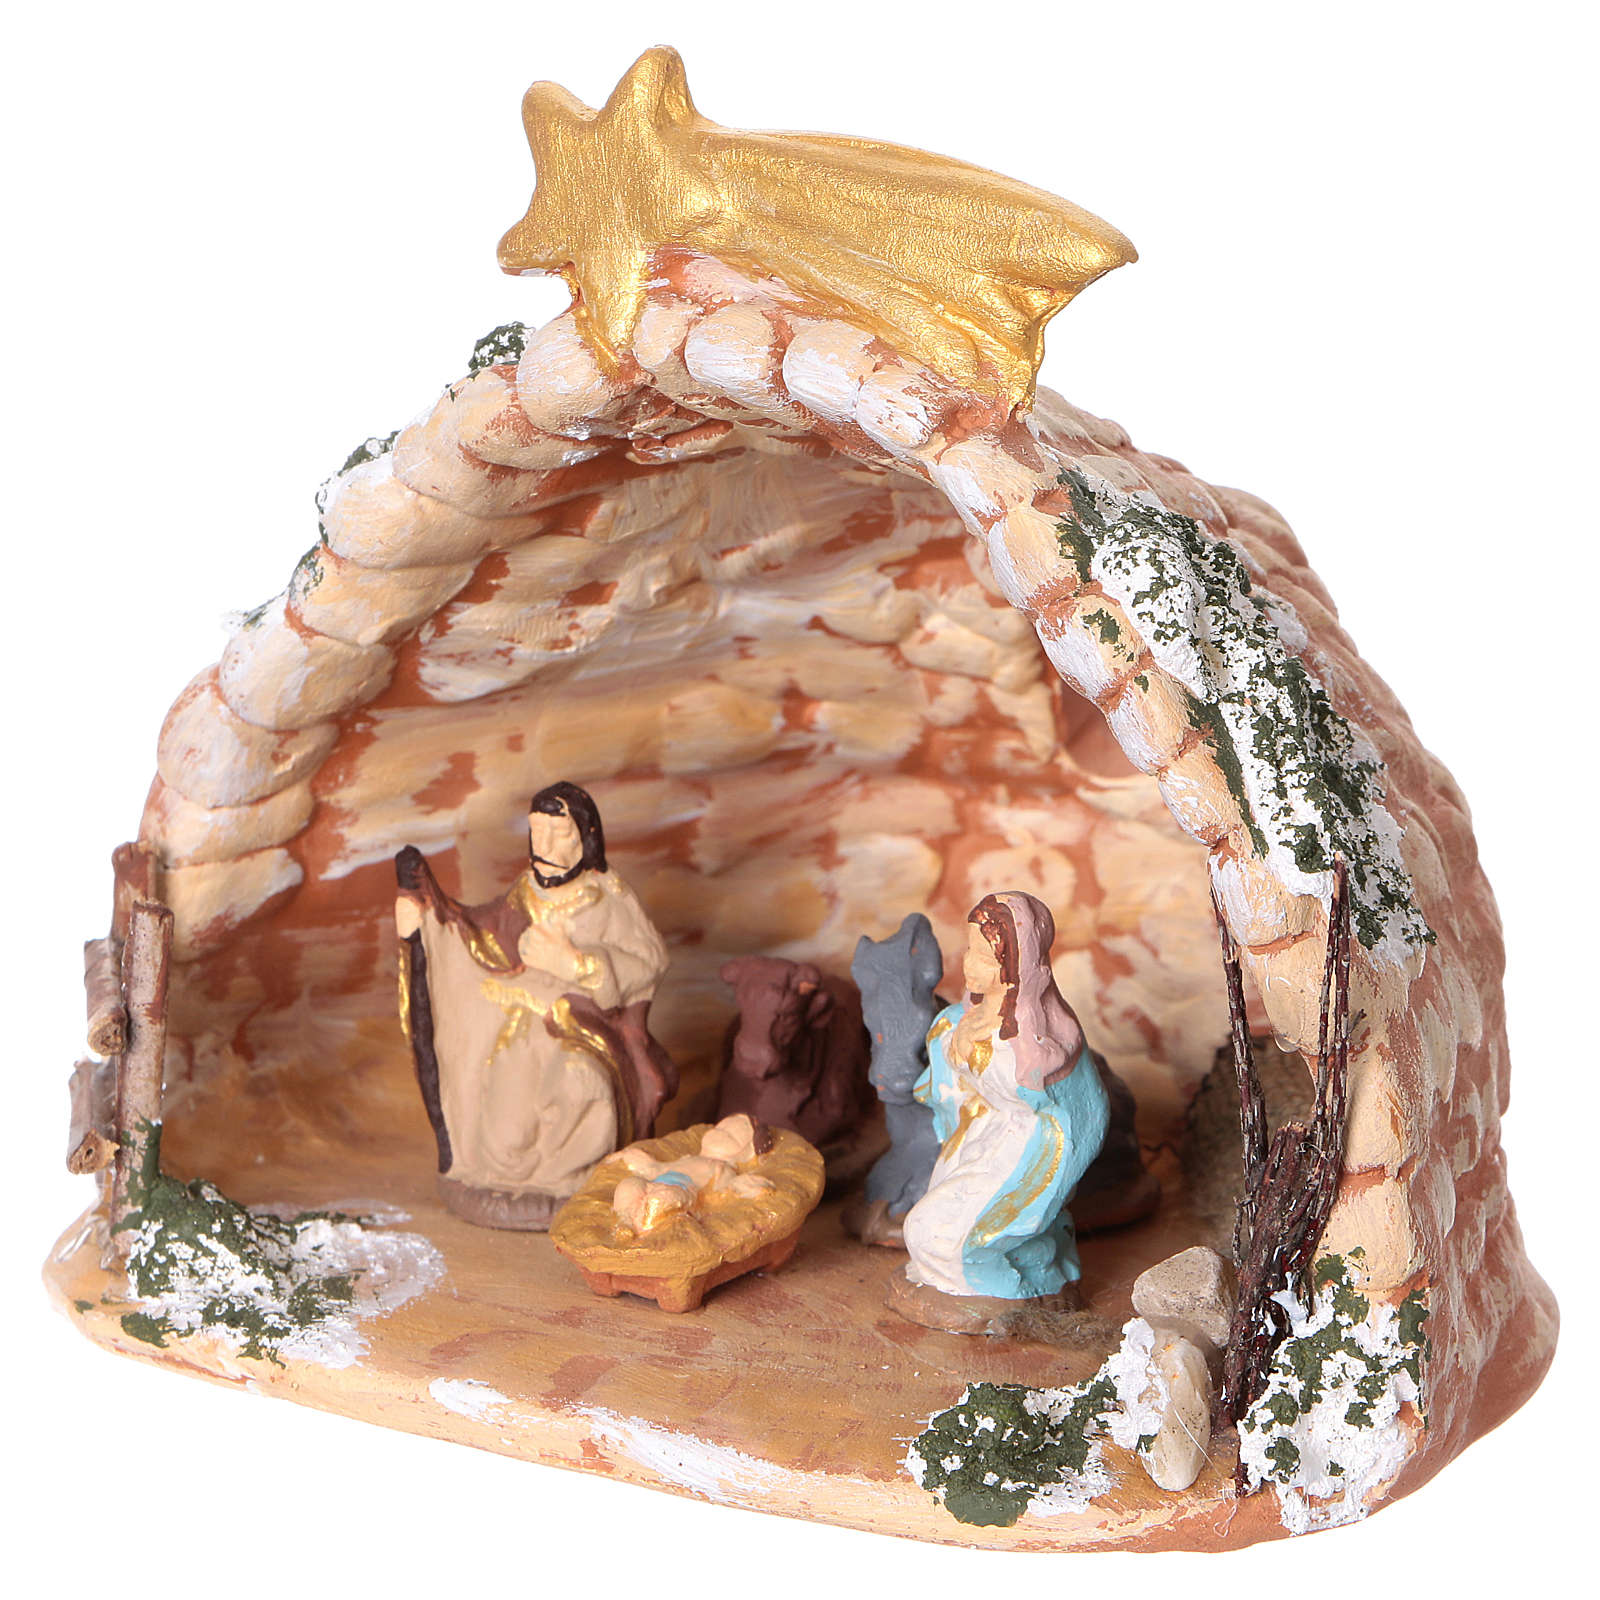 Cave in painted Deruta terracotta with Nativity scene 4 cm 10x10x10 cm 4